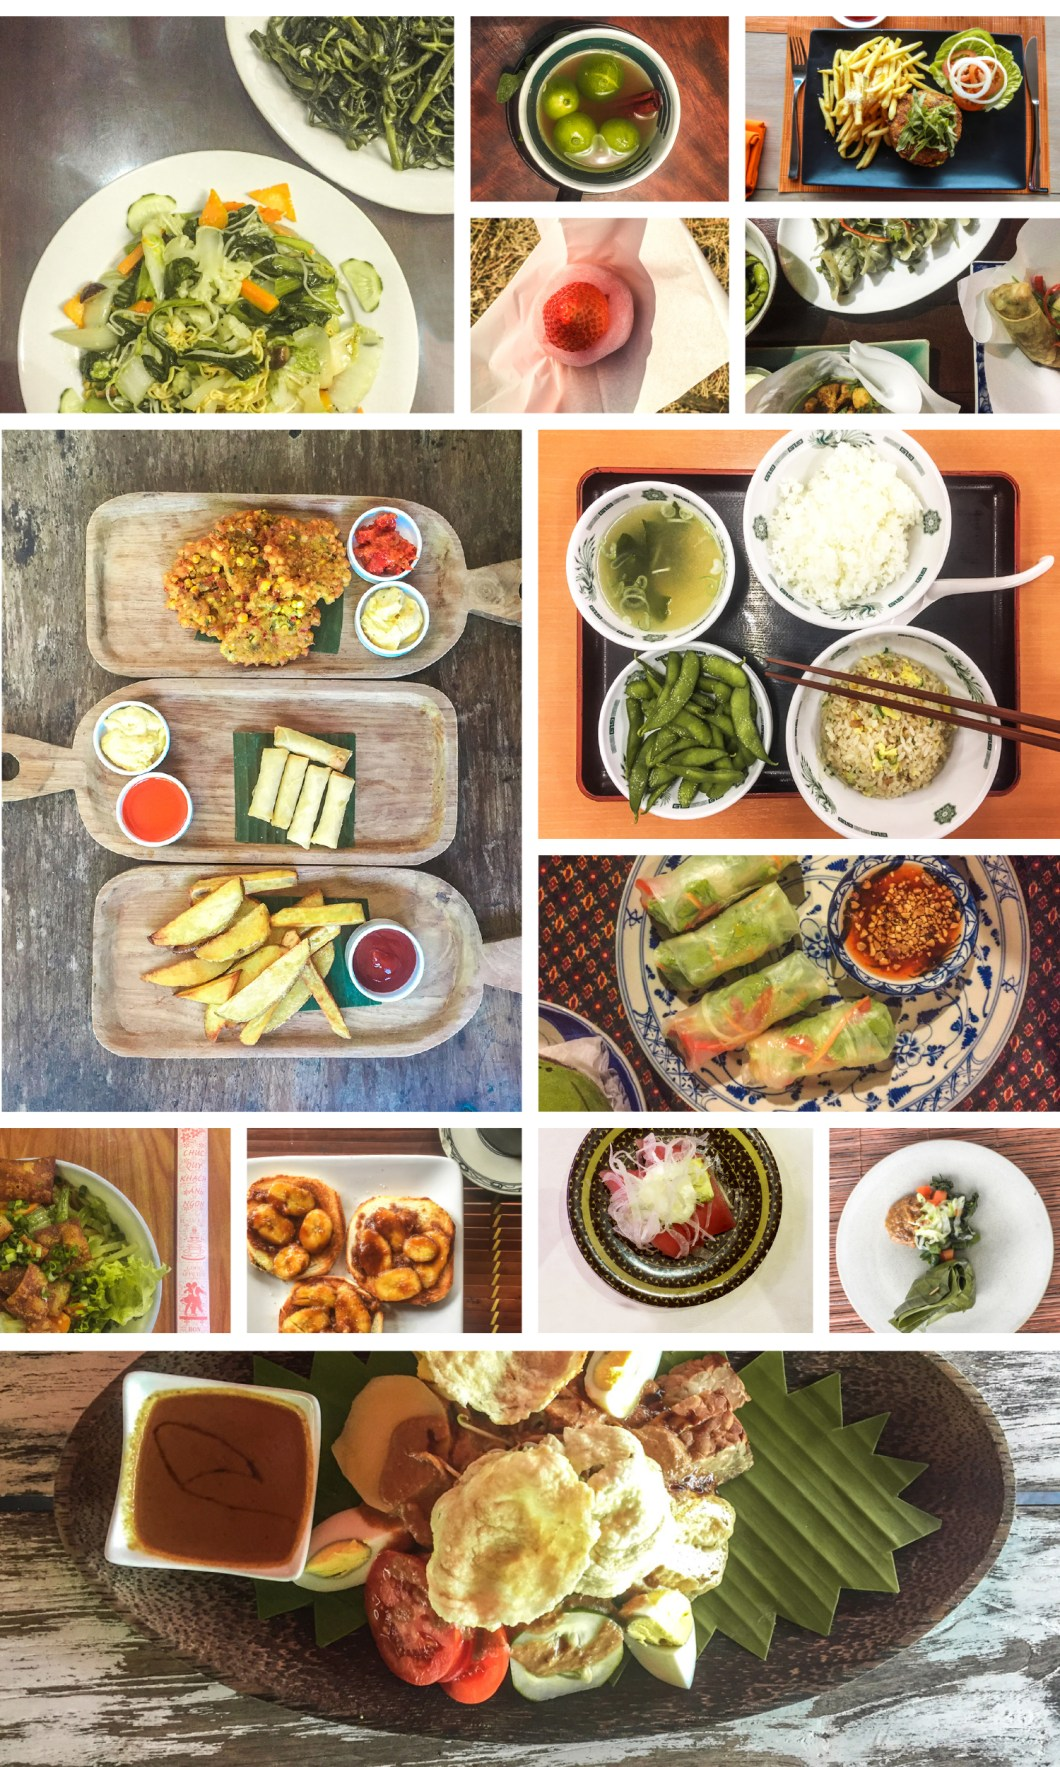 Asian Food | How Far From Home